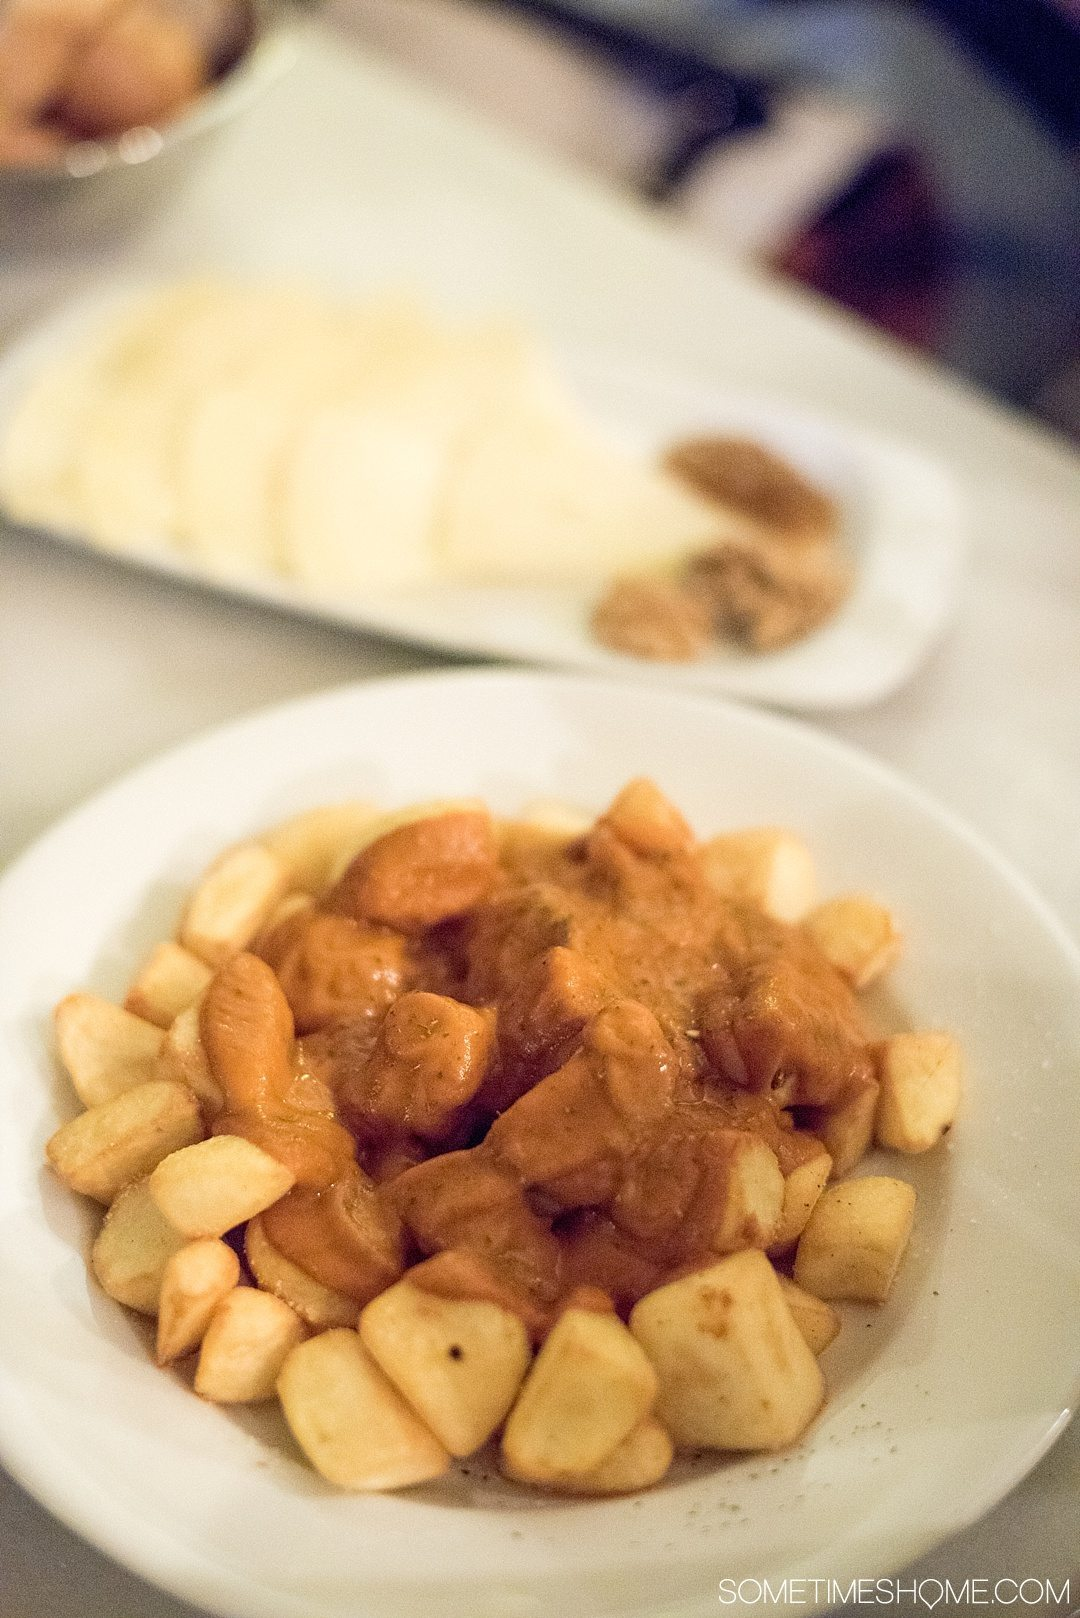 Eat Your Way Through Seville on Sometimes Home travel blog. Photo of patatas bravas, fried potatoes and gravy.